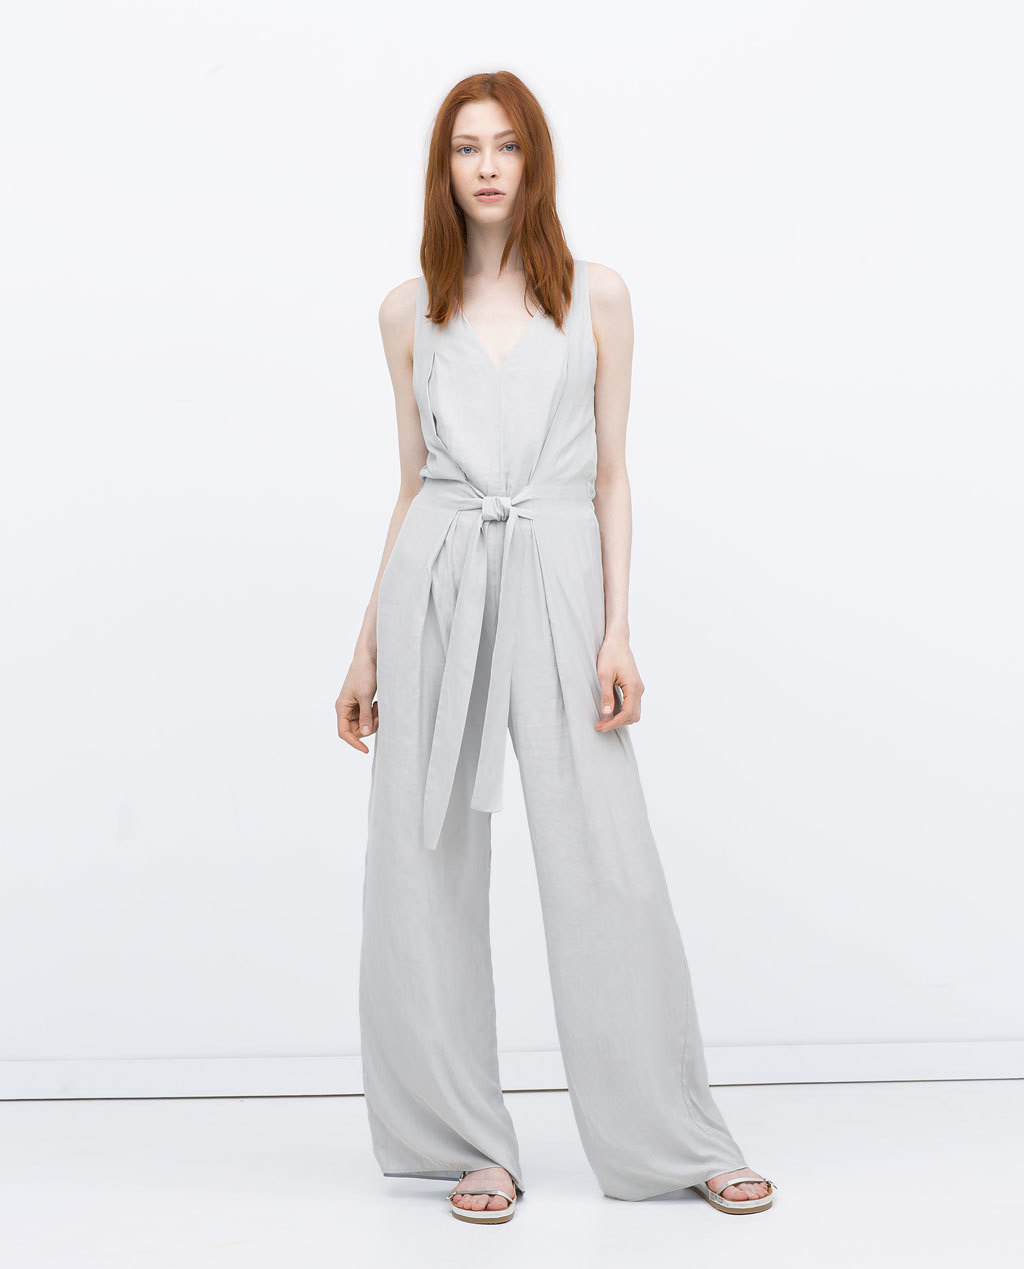 Jumpsuit Dress With Tie Waist - length: standard; neckline: v-neck; fit: fitted at waist; pattern: plain; sleeve style: sleeveless; waist detail: belted waist/tie at waist/drawstring; predominant colour: light grey; occasions: casual, evening; fibres: polyester/polyamide - 100%; sleeve length: sleeveless; texture group: crepes; style: jumpsuit; pattern type: fabric; season: s/s 2015; wardrobe: highlight